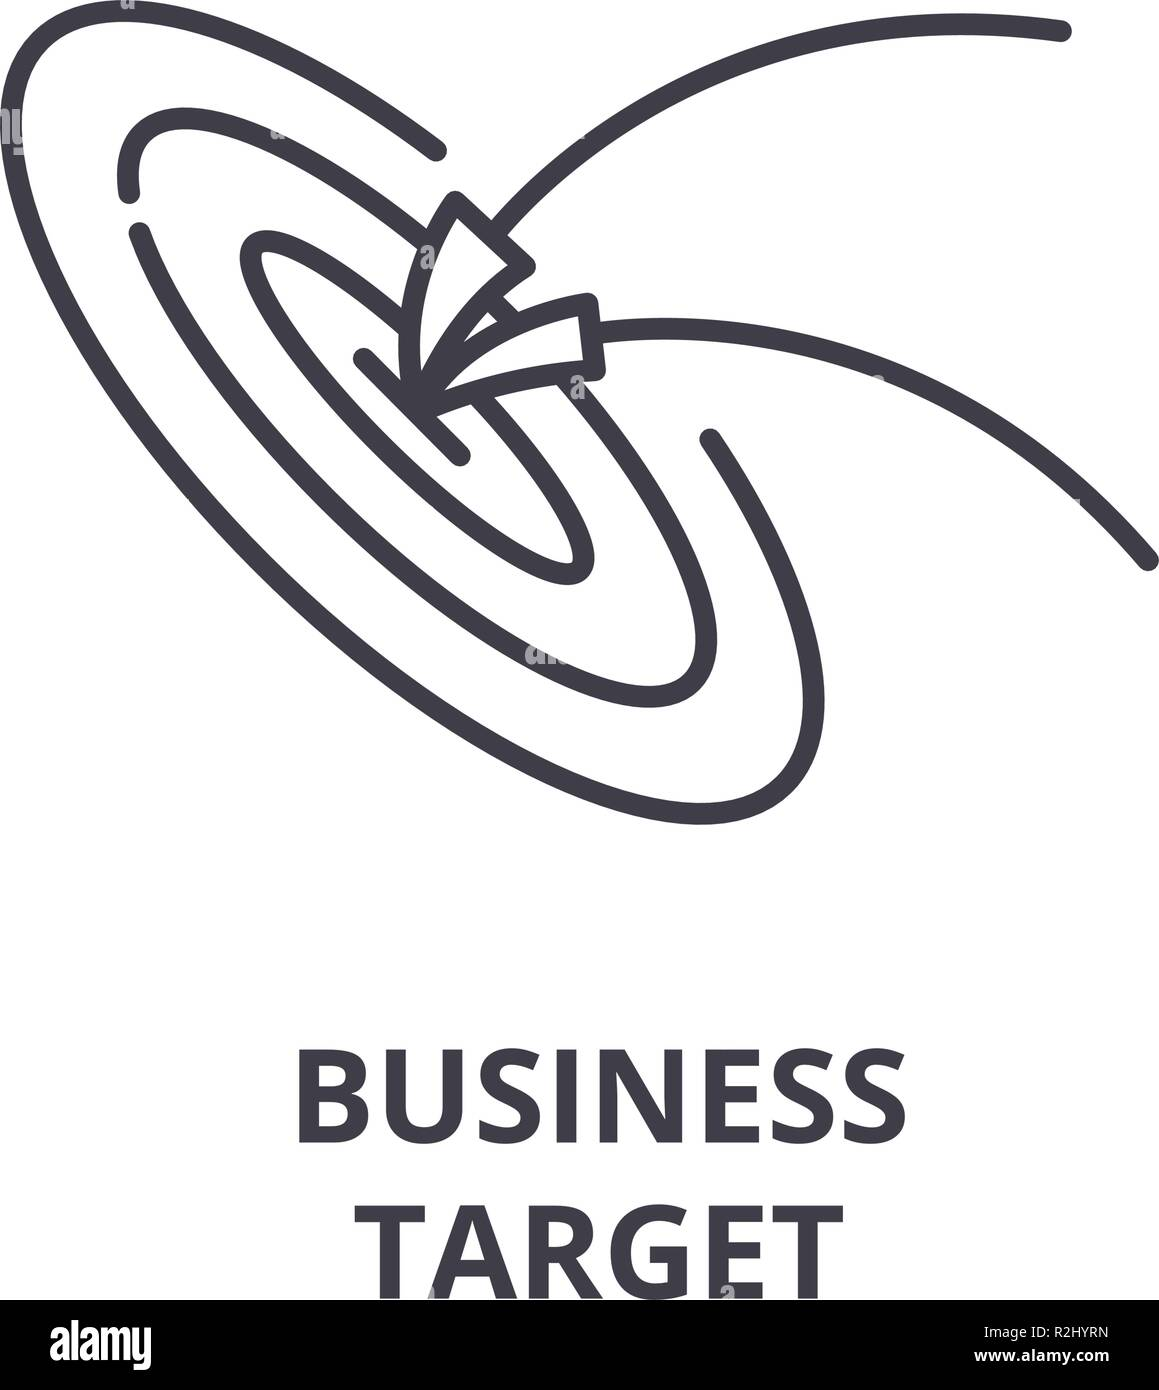 Business target line icon concept. Business target vector linear illustration, symbol, sign Stock Vector